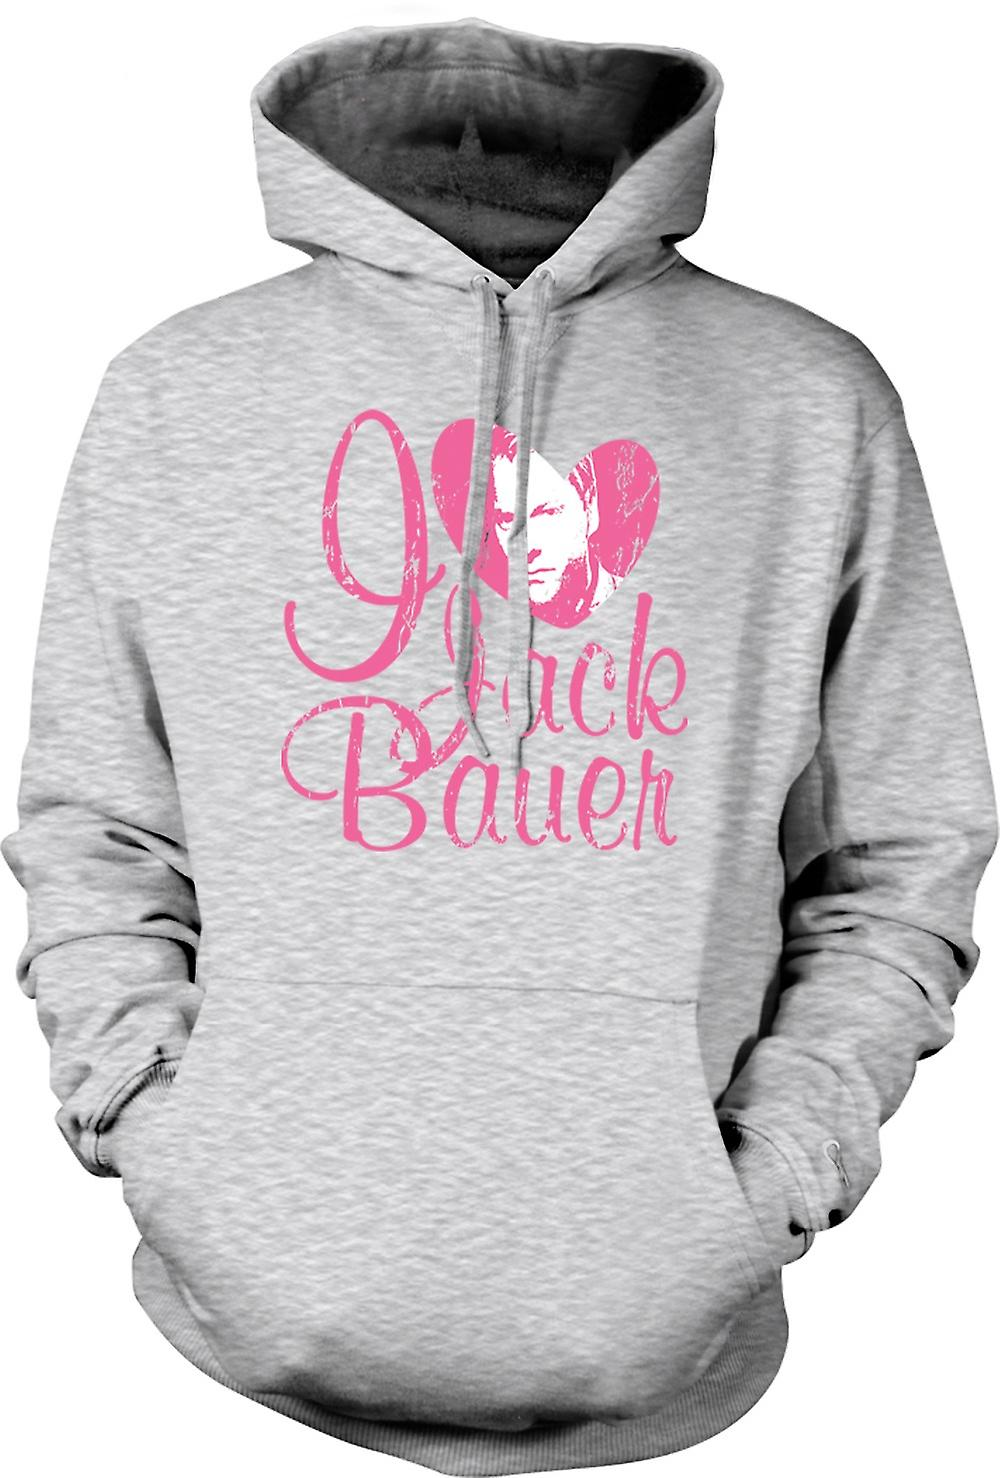 Mens Hoodie - jag älskar Jack Bauer 24 - Keifer - Tv - Film